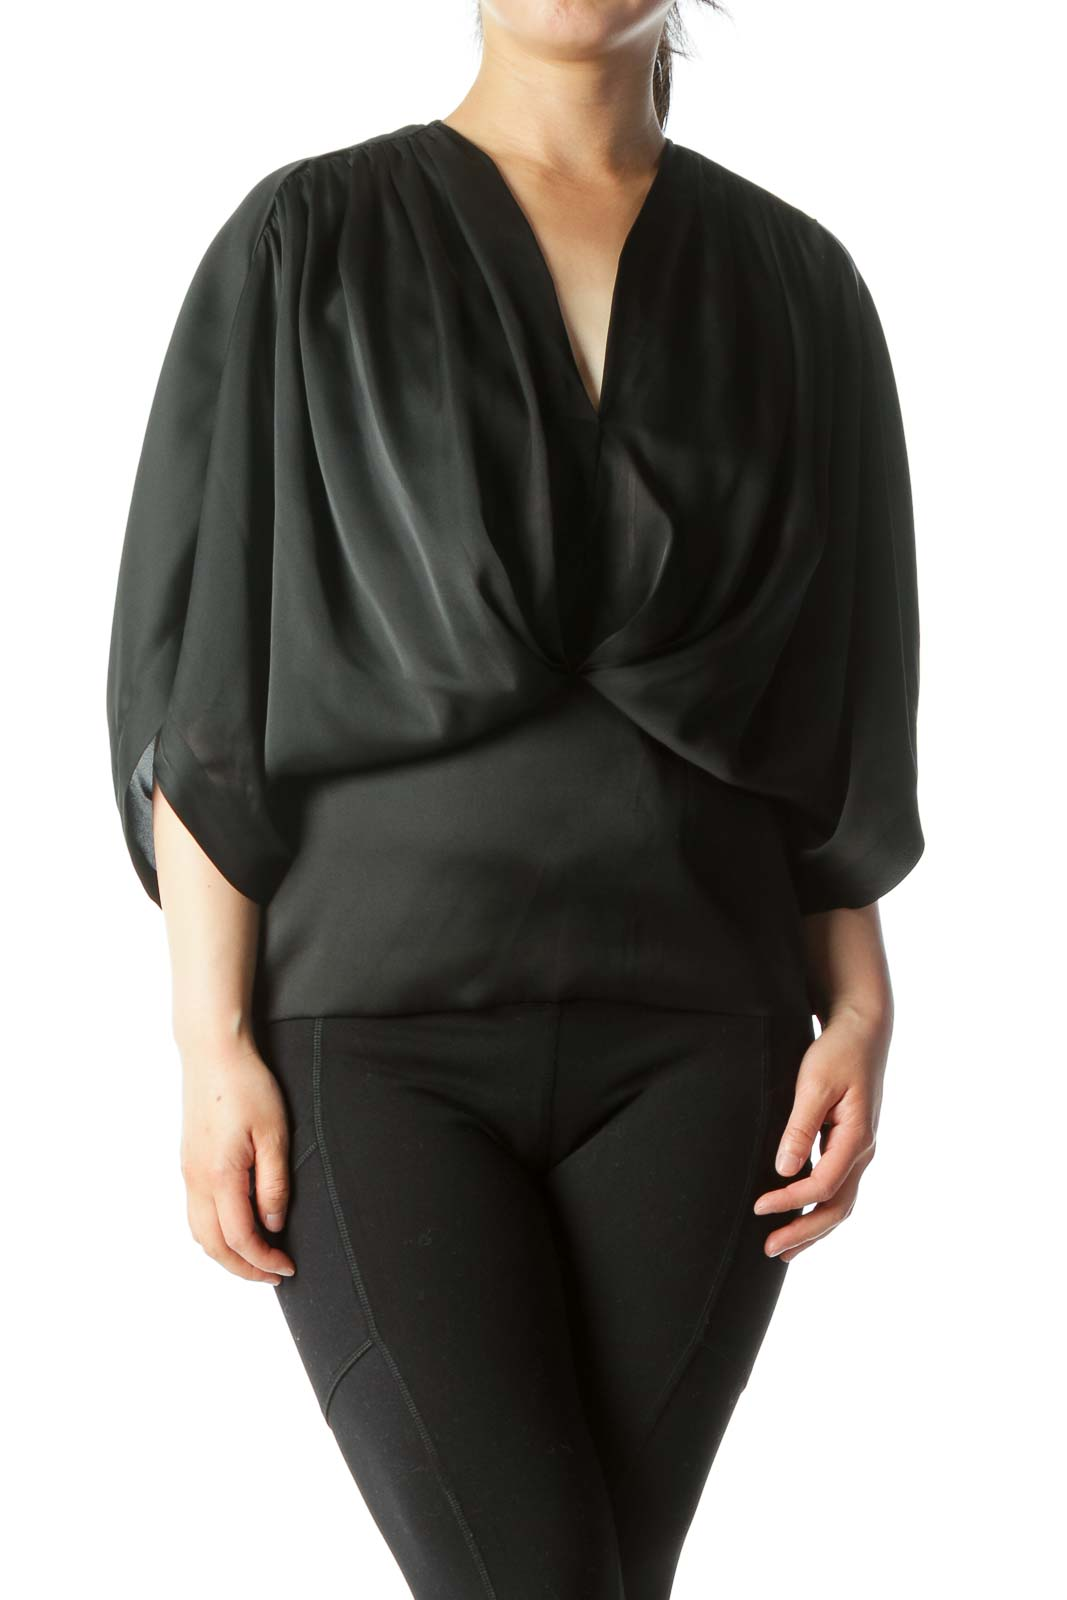 Black Bat-Sleeve Top